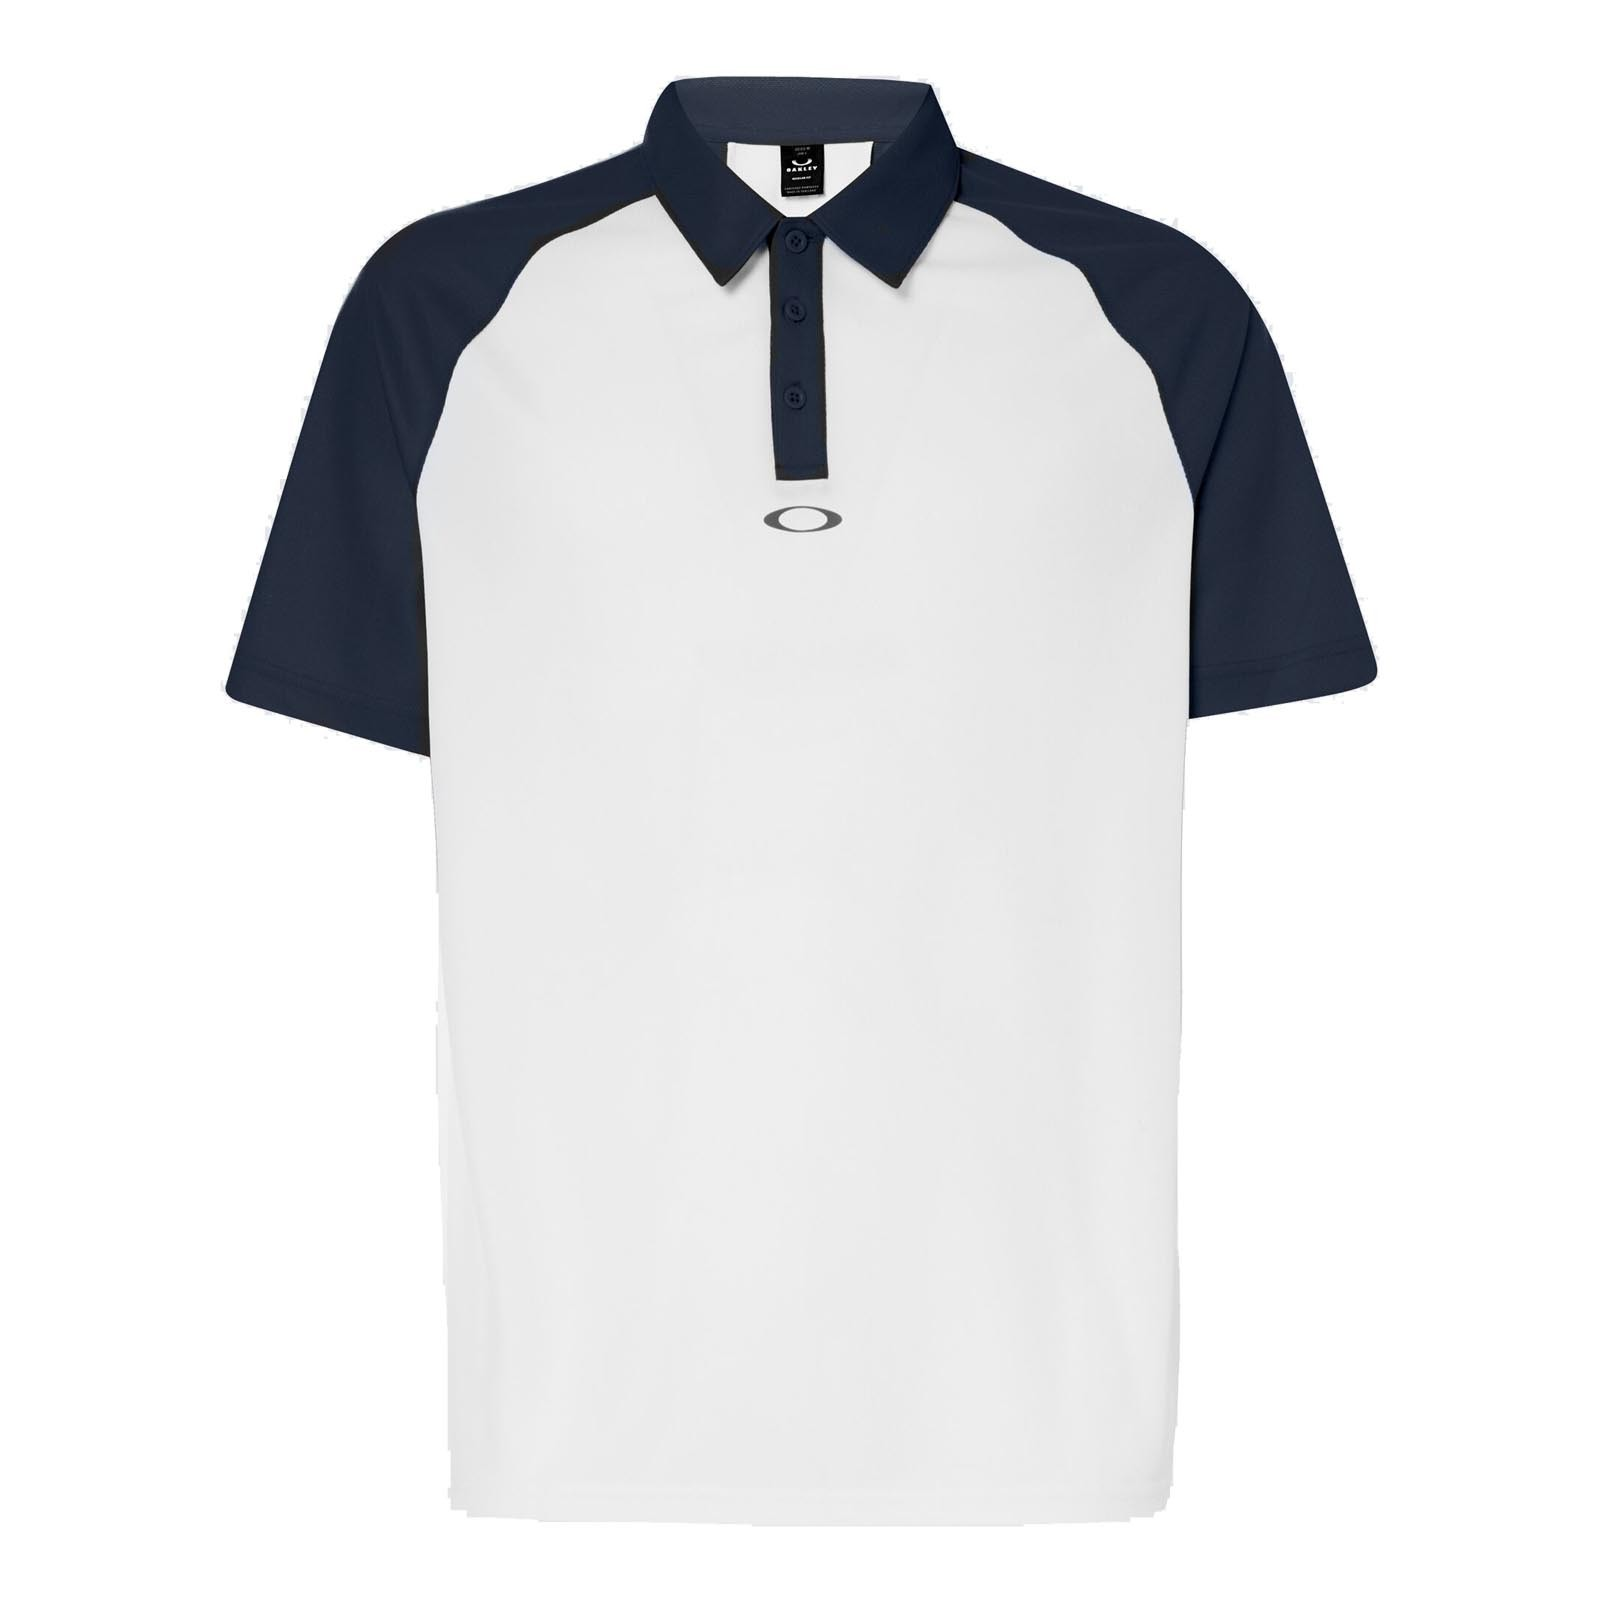 Oakley Traditional Golf Polo Shirt